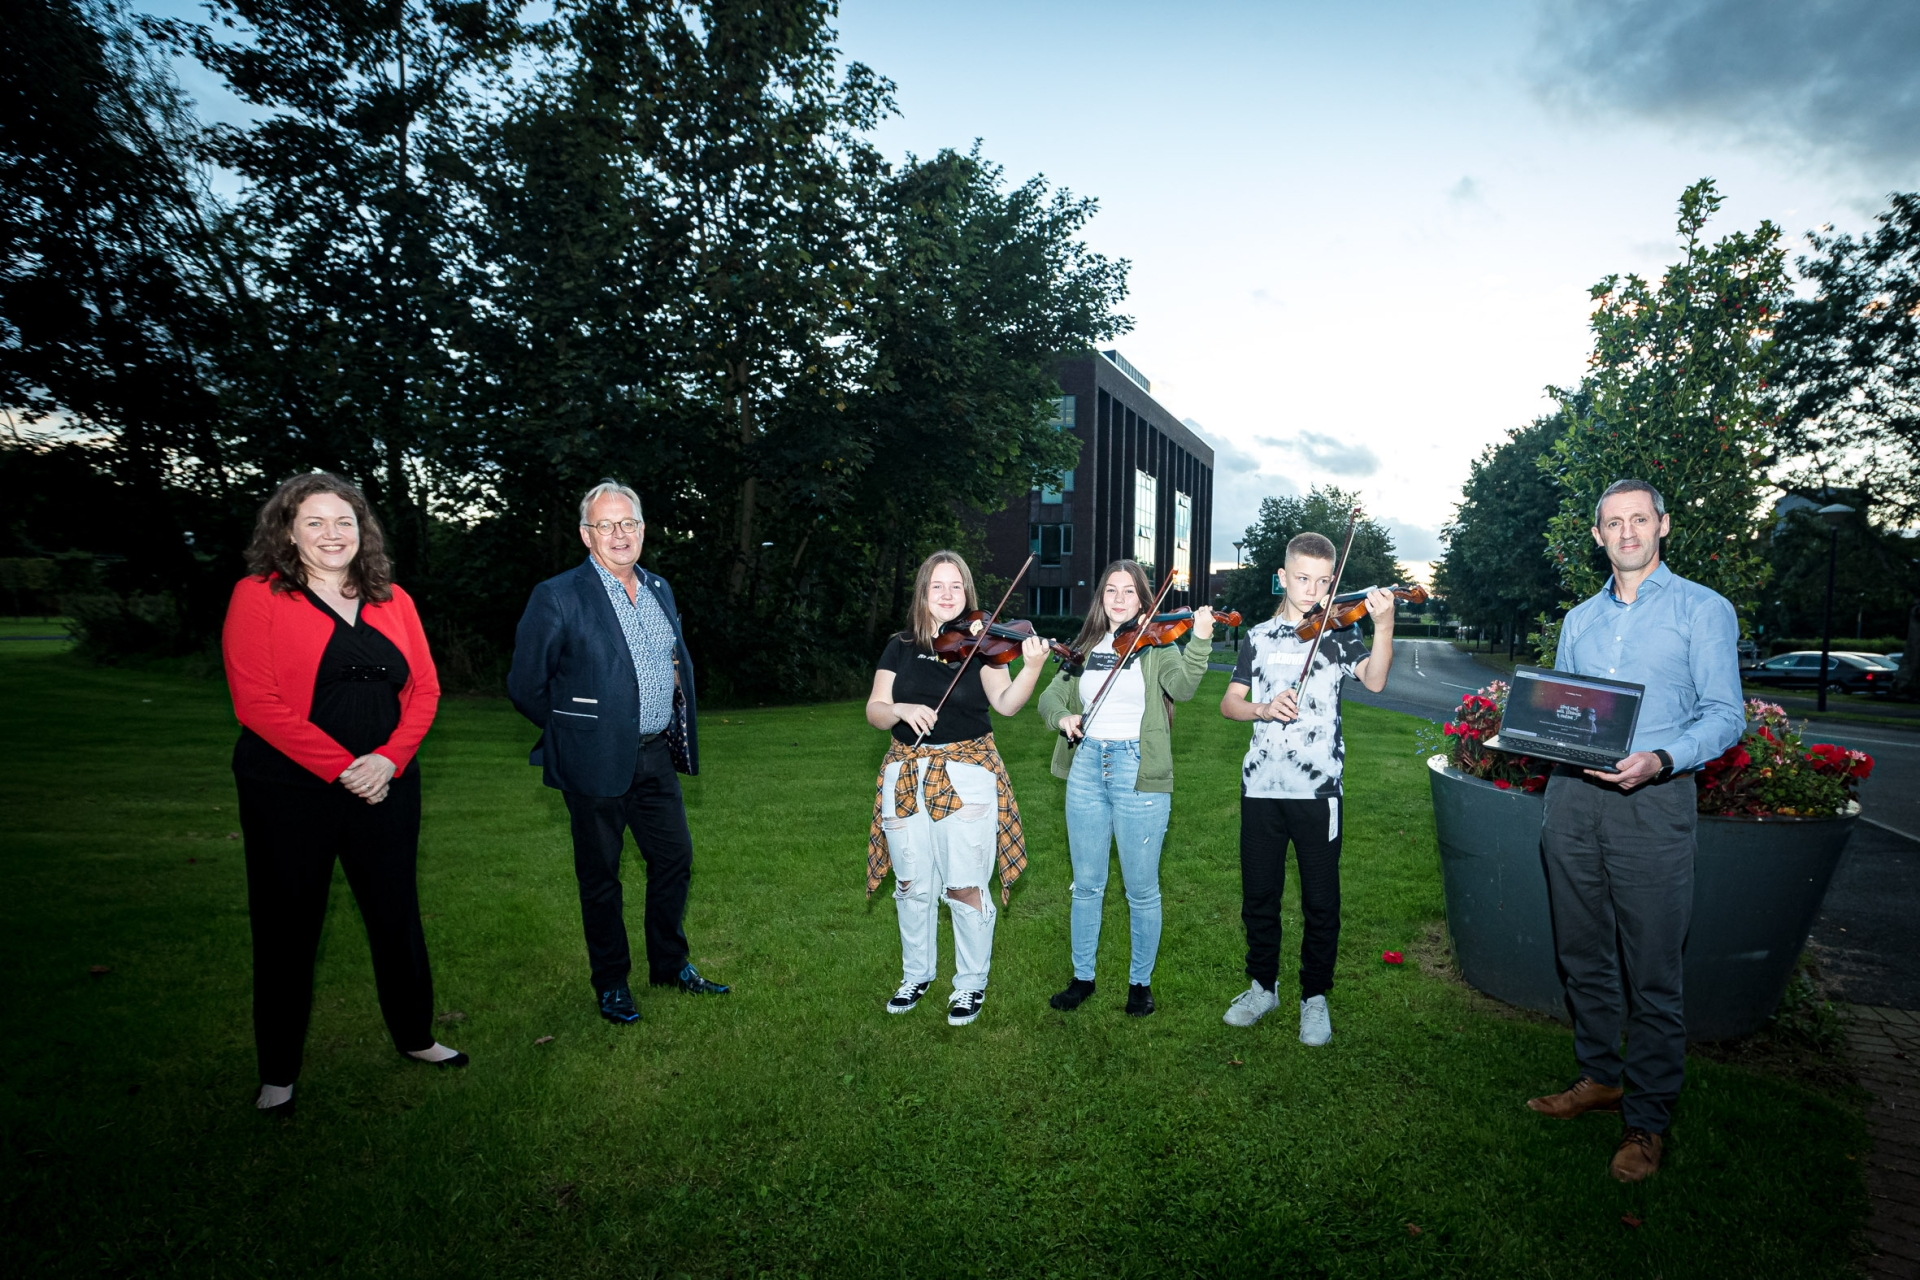 Kathrine Barnecutt, ICO Education & Outreach Officer,  Gerard Keenan, CEO Irish Chamber Orchestra, Leona, Allanah & Peter Purcill, ICO Youth Orchestra and Kieran Considine, Head of AIB (Clare Limerick & Kerry) at the launch of  ICO's innovative new teaching resource